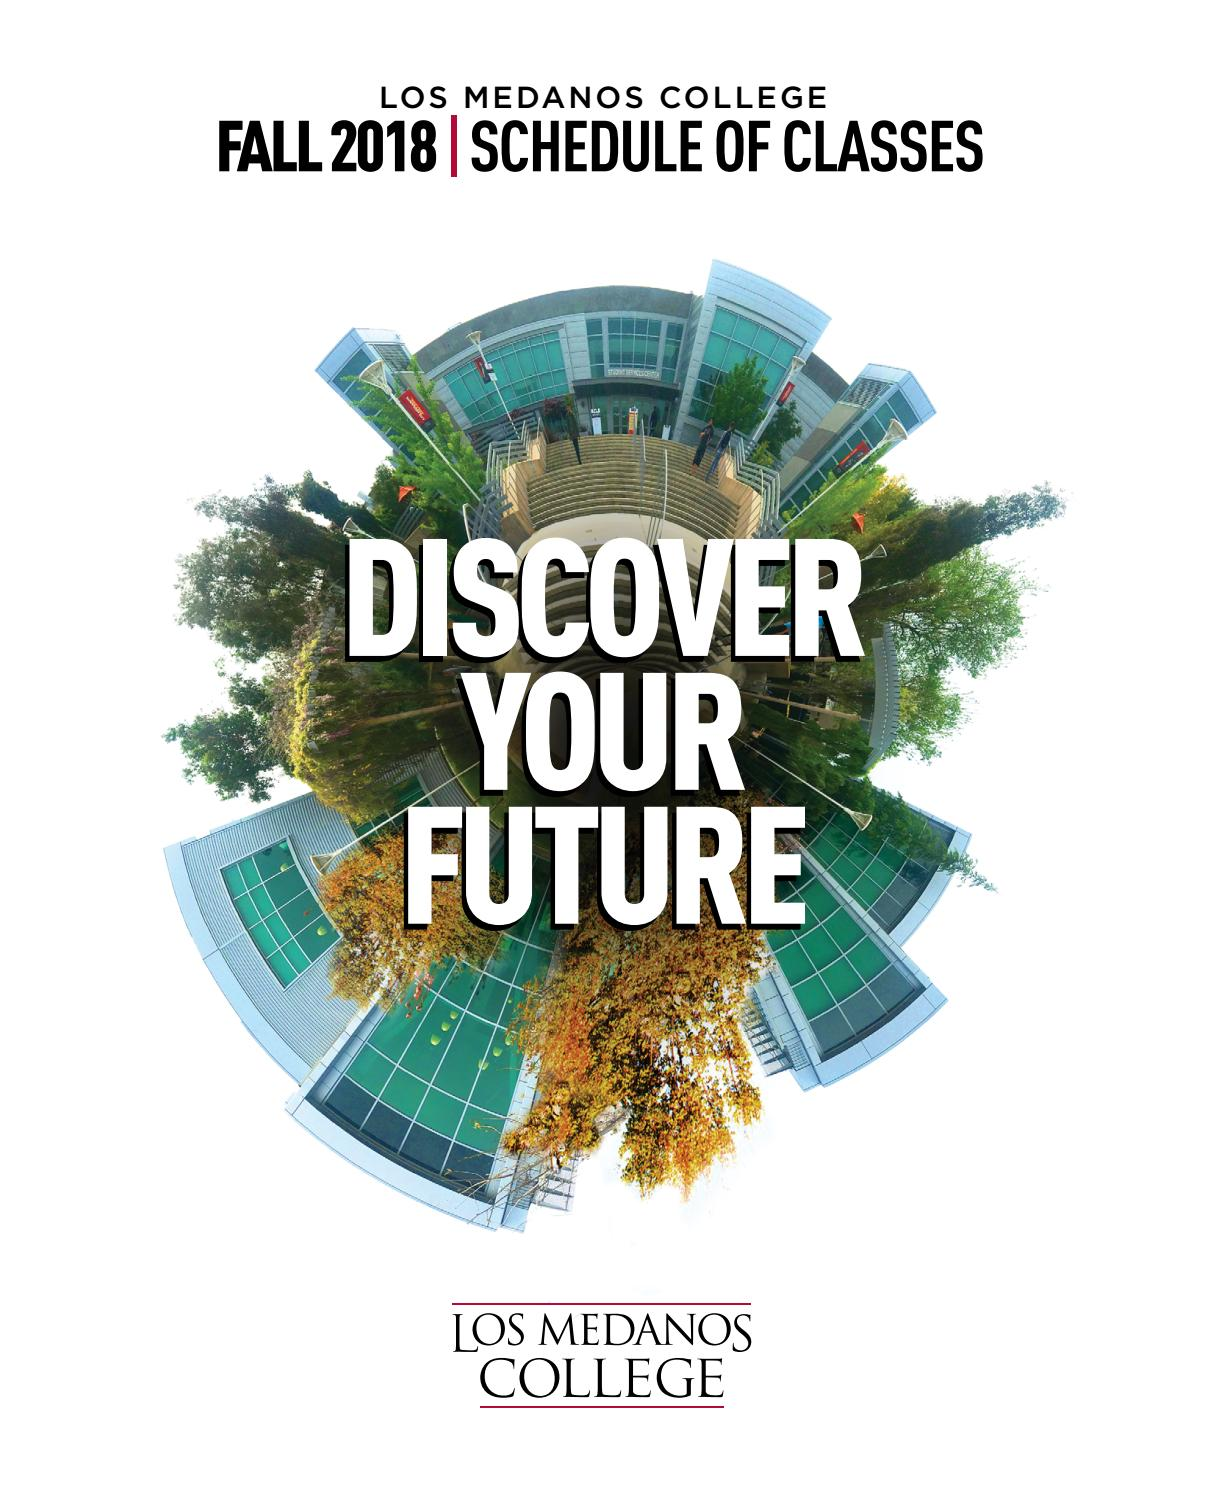 2018 Fall 2018 Schedule of Classes by Los Medanos College